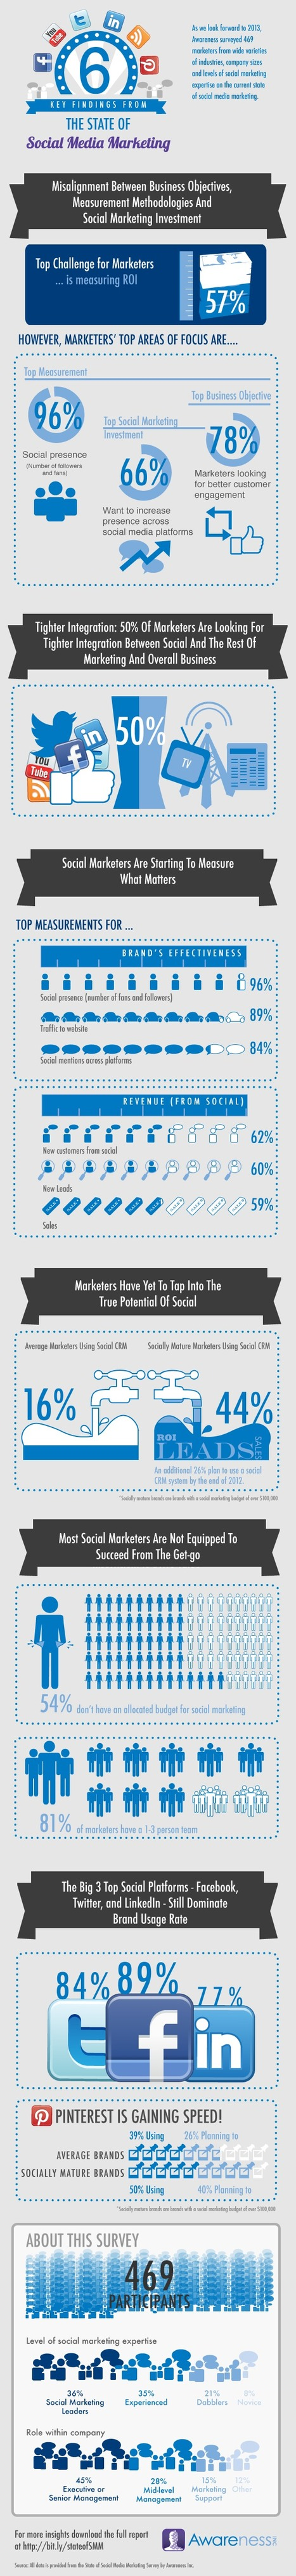 "Infographic"" ""State of Social Marketing Survey"" 